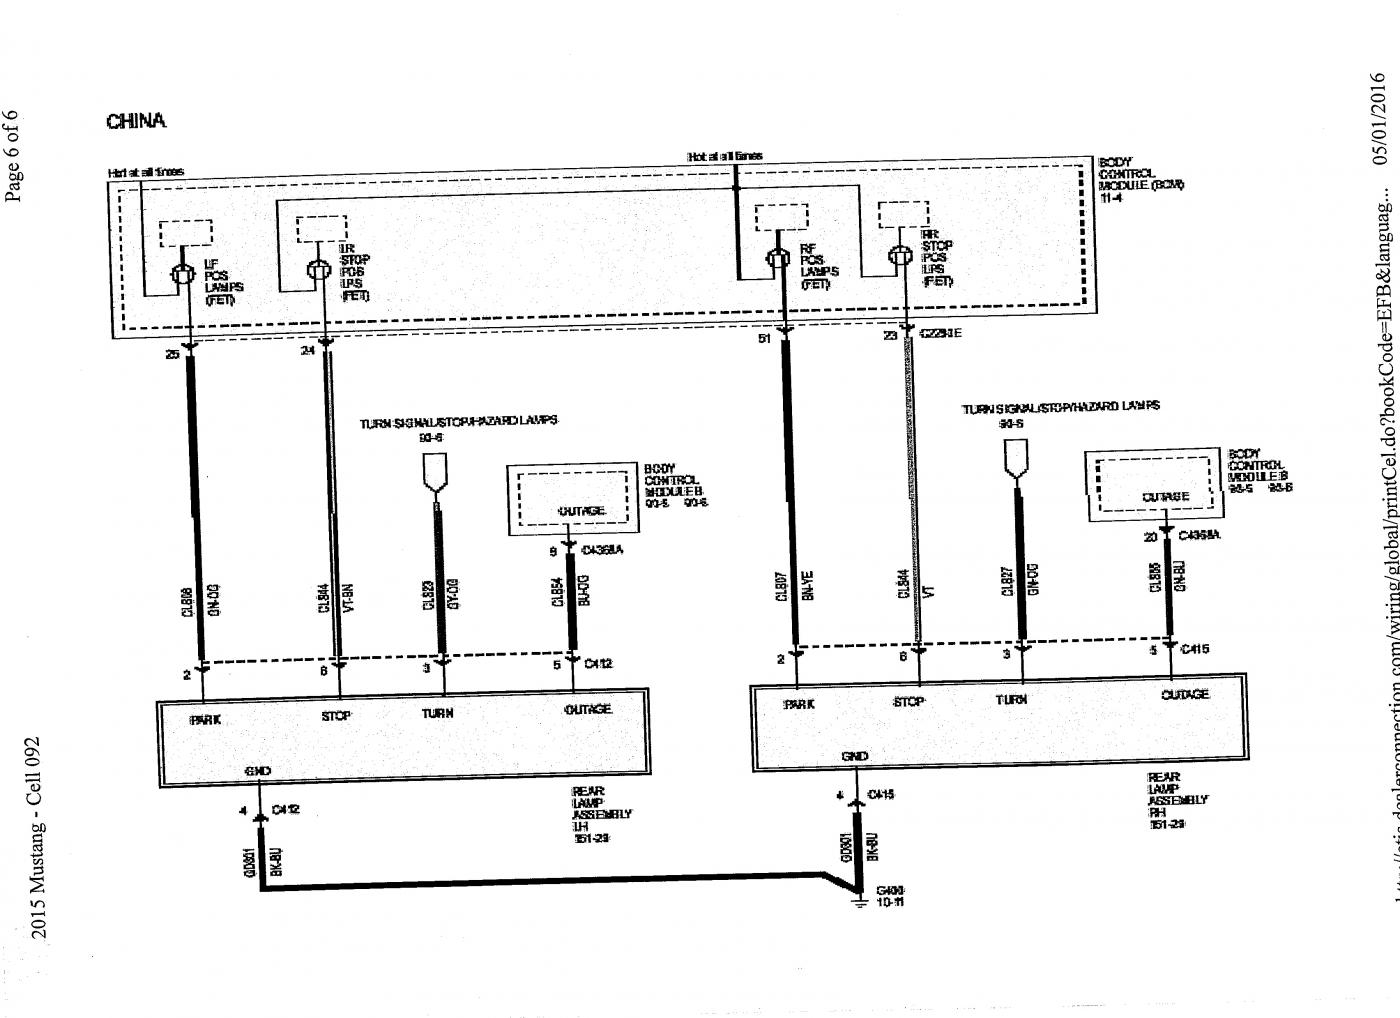 Wiring Diagram For Mustang